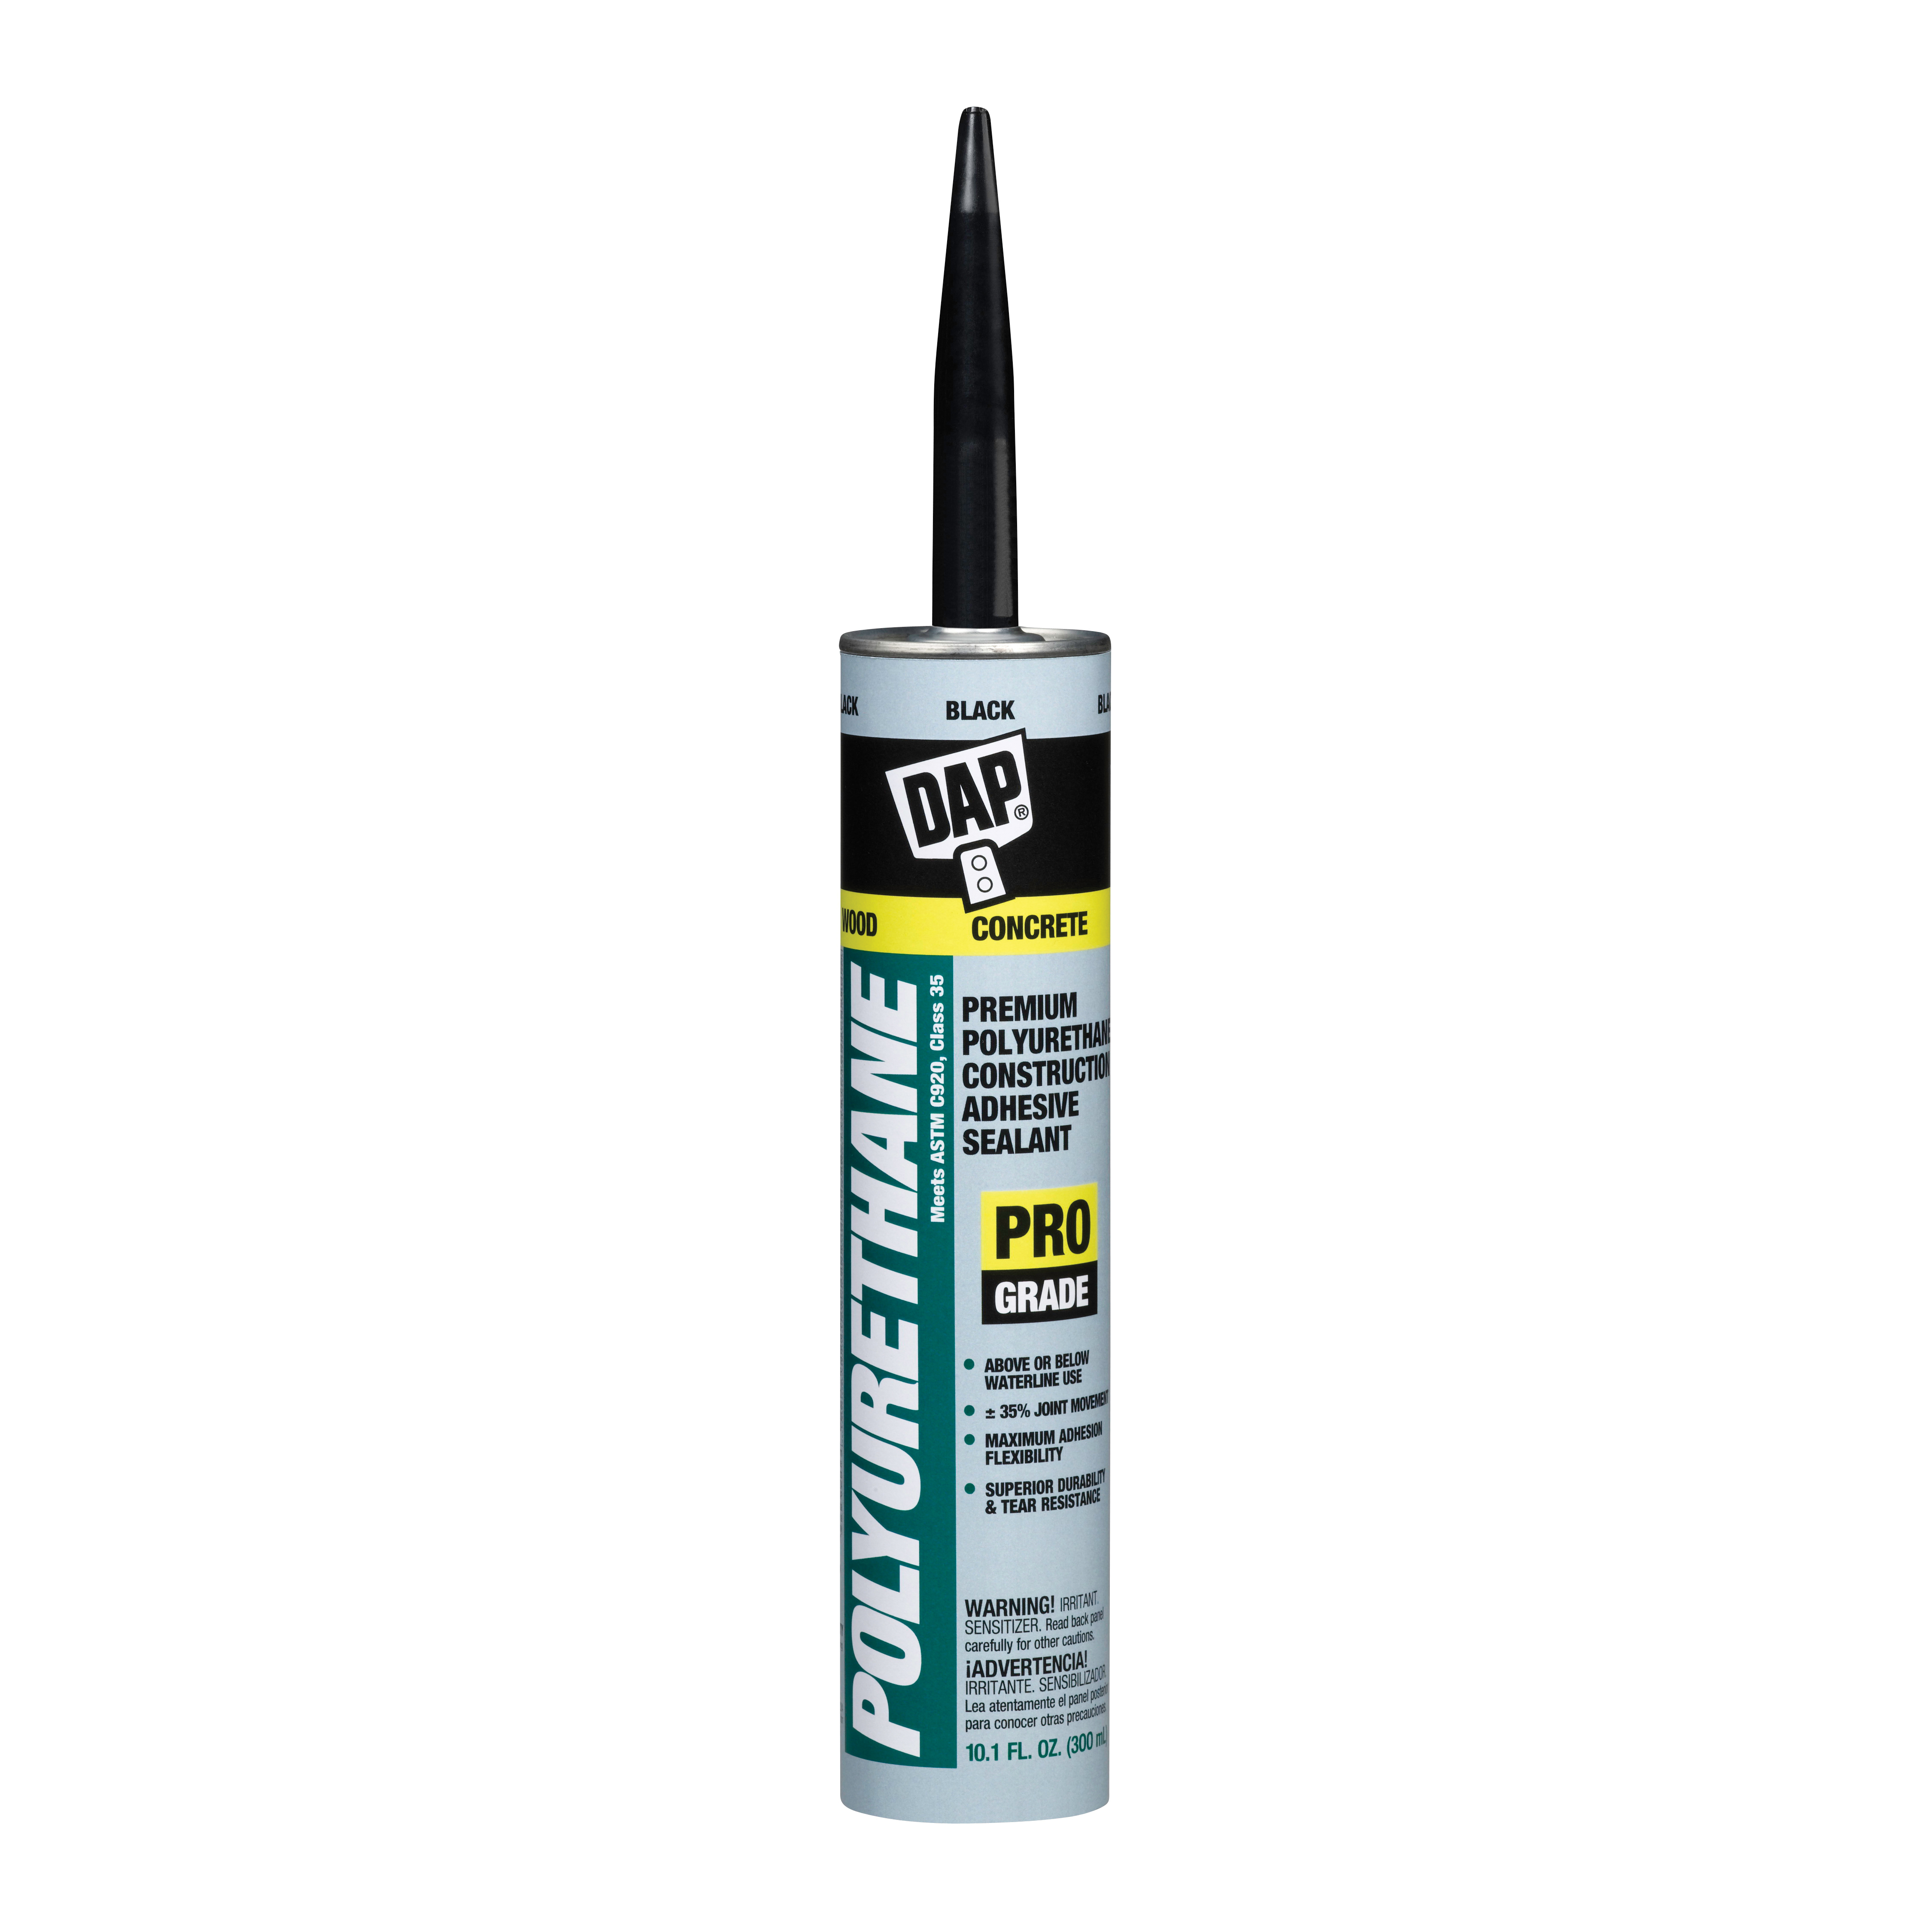 Picture of DAP 18816 Sealant, Black, 4 to 7 Days Curing, 10.1 fl-oz Package, Cartridge